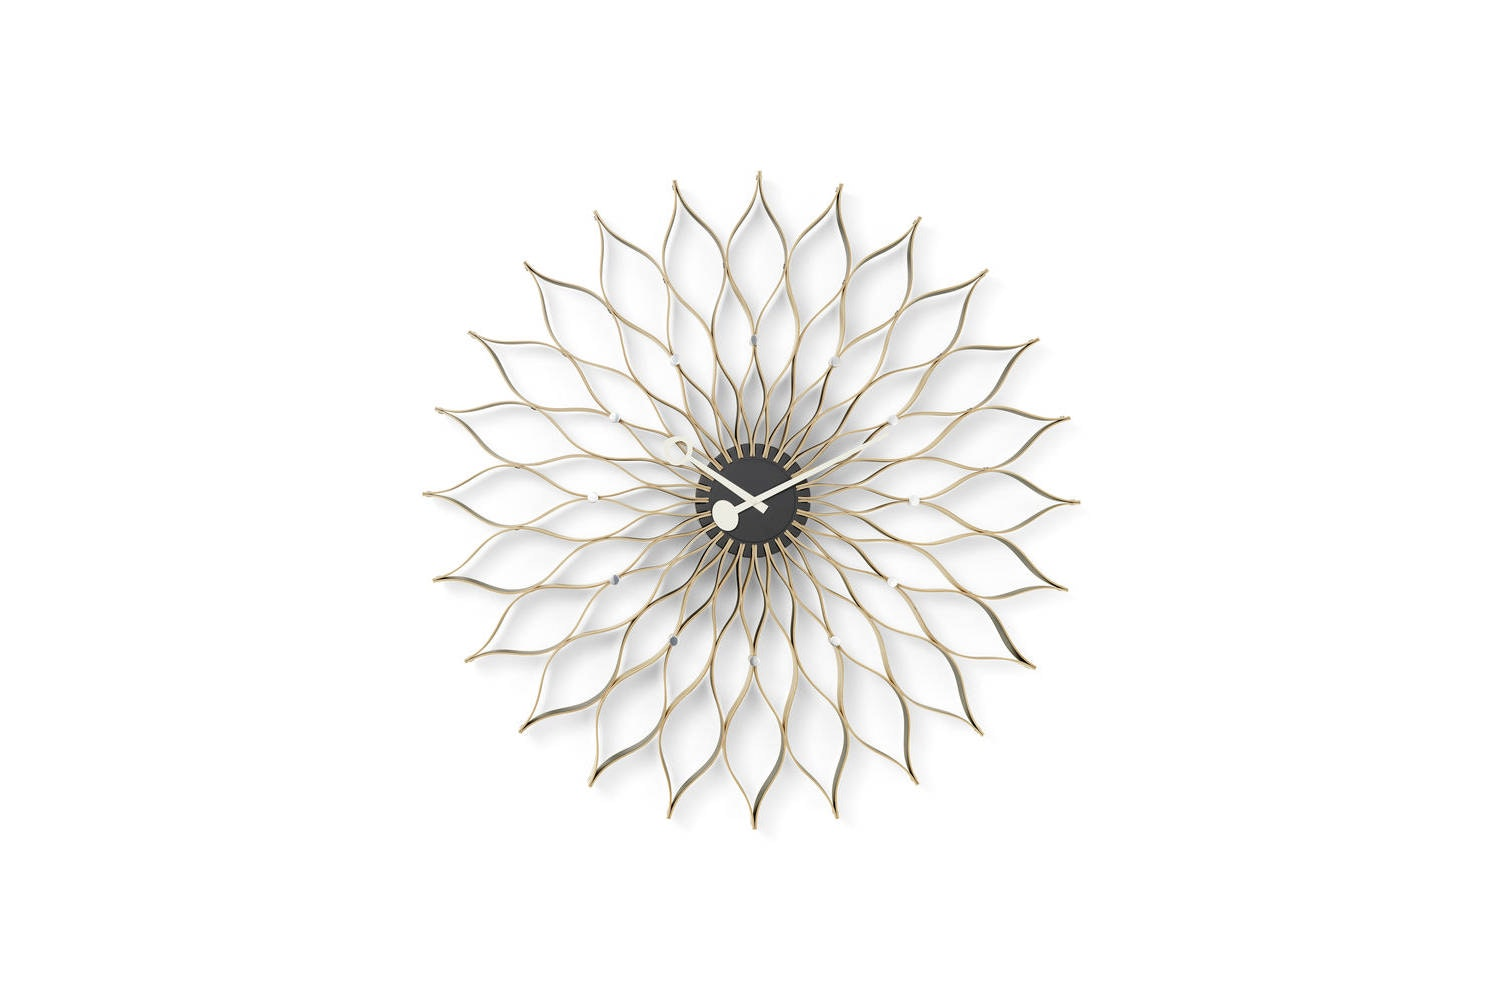 Sunflower Clock by George Nelson for Vitra